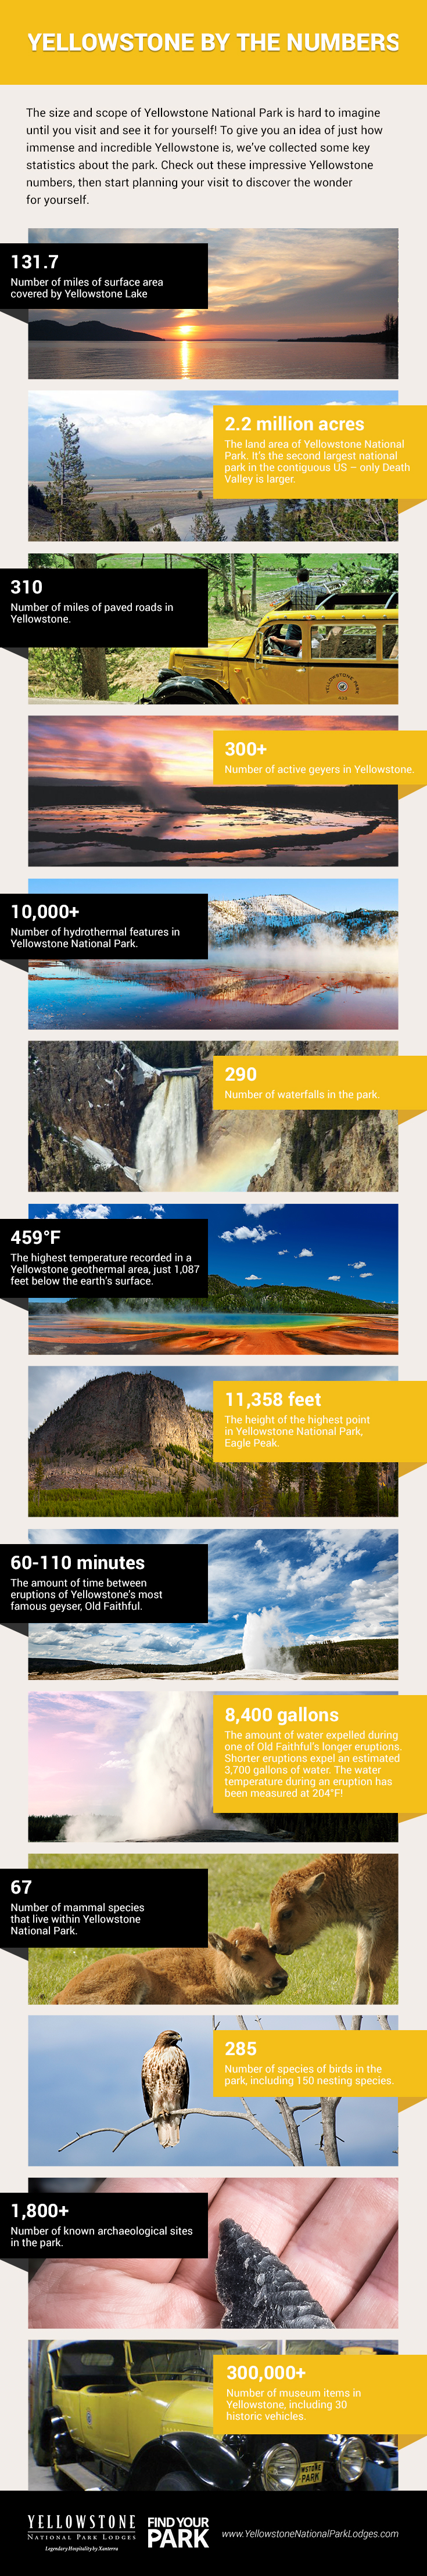 Infographic: Yellowstone Stats